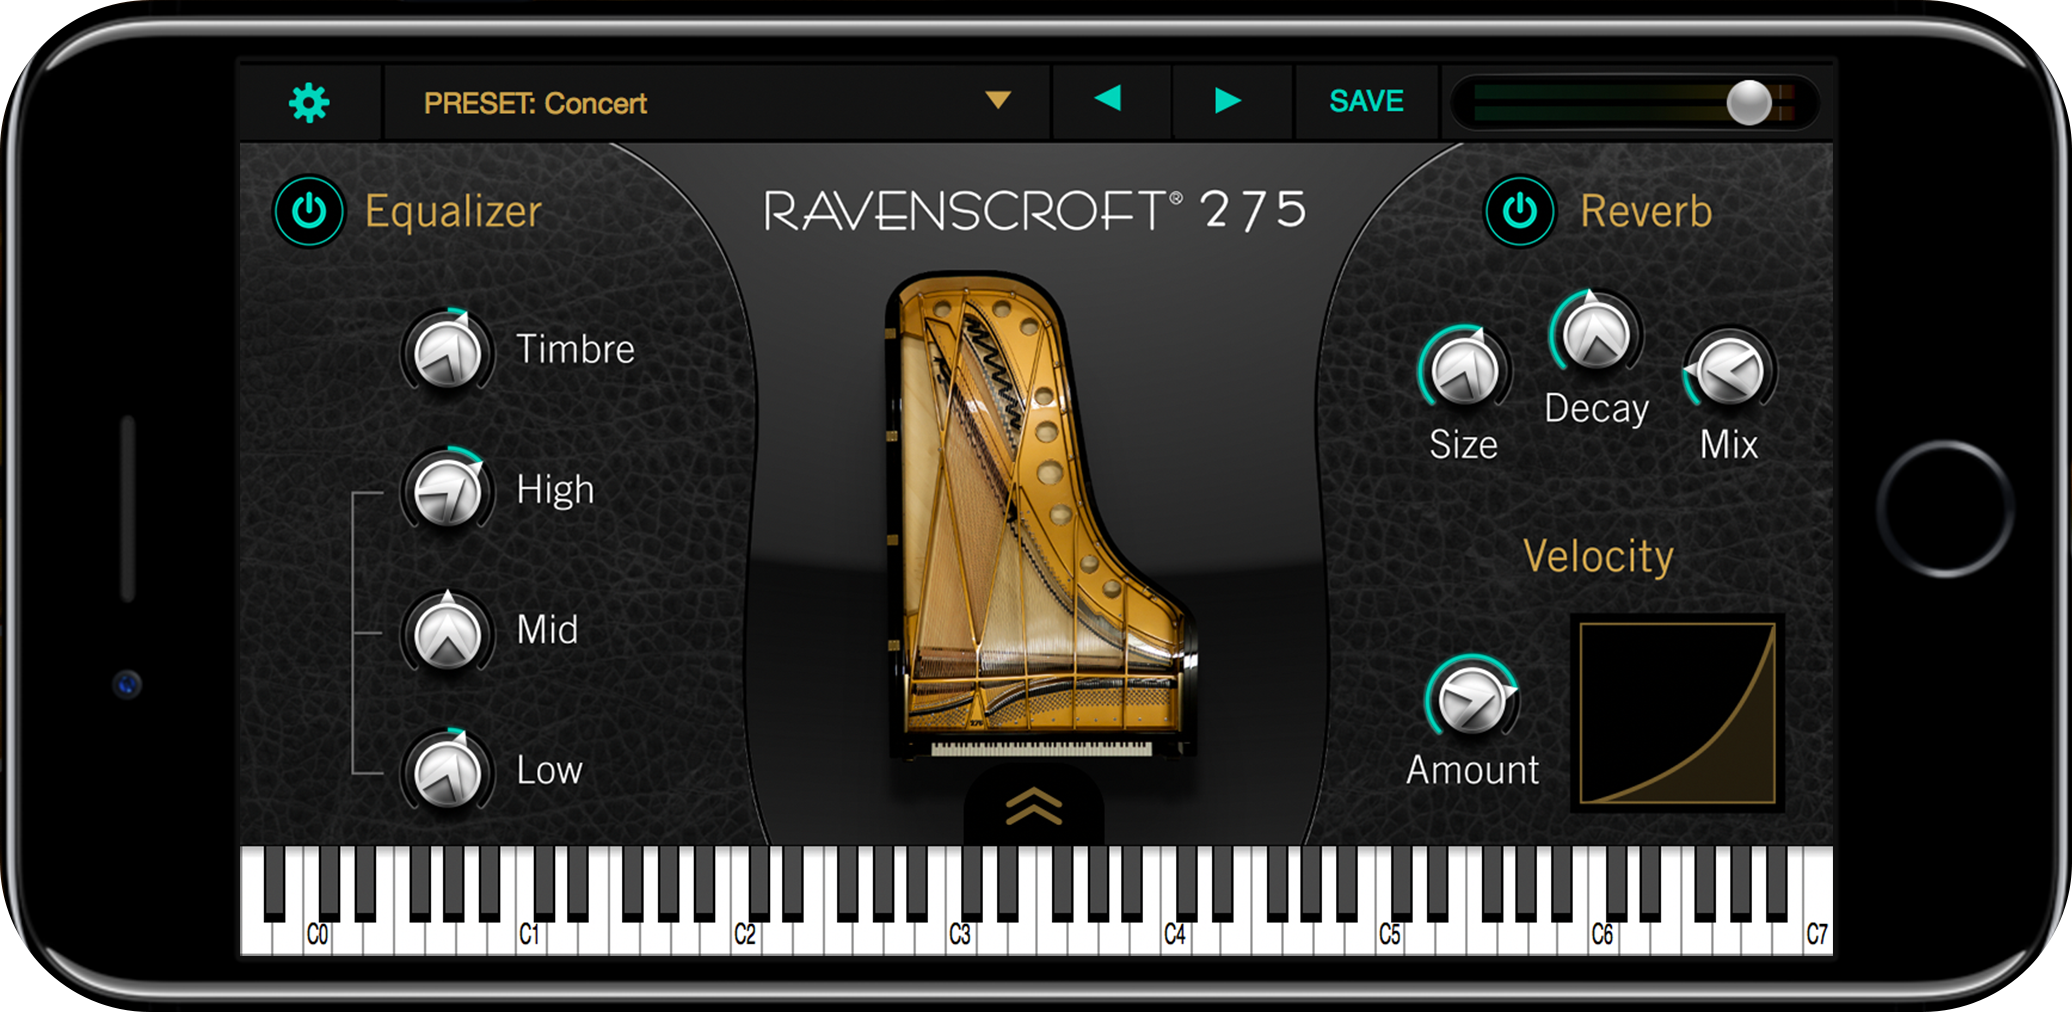 UVI Ravenscroft 275 Piano | GUI iPhone